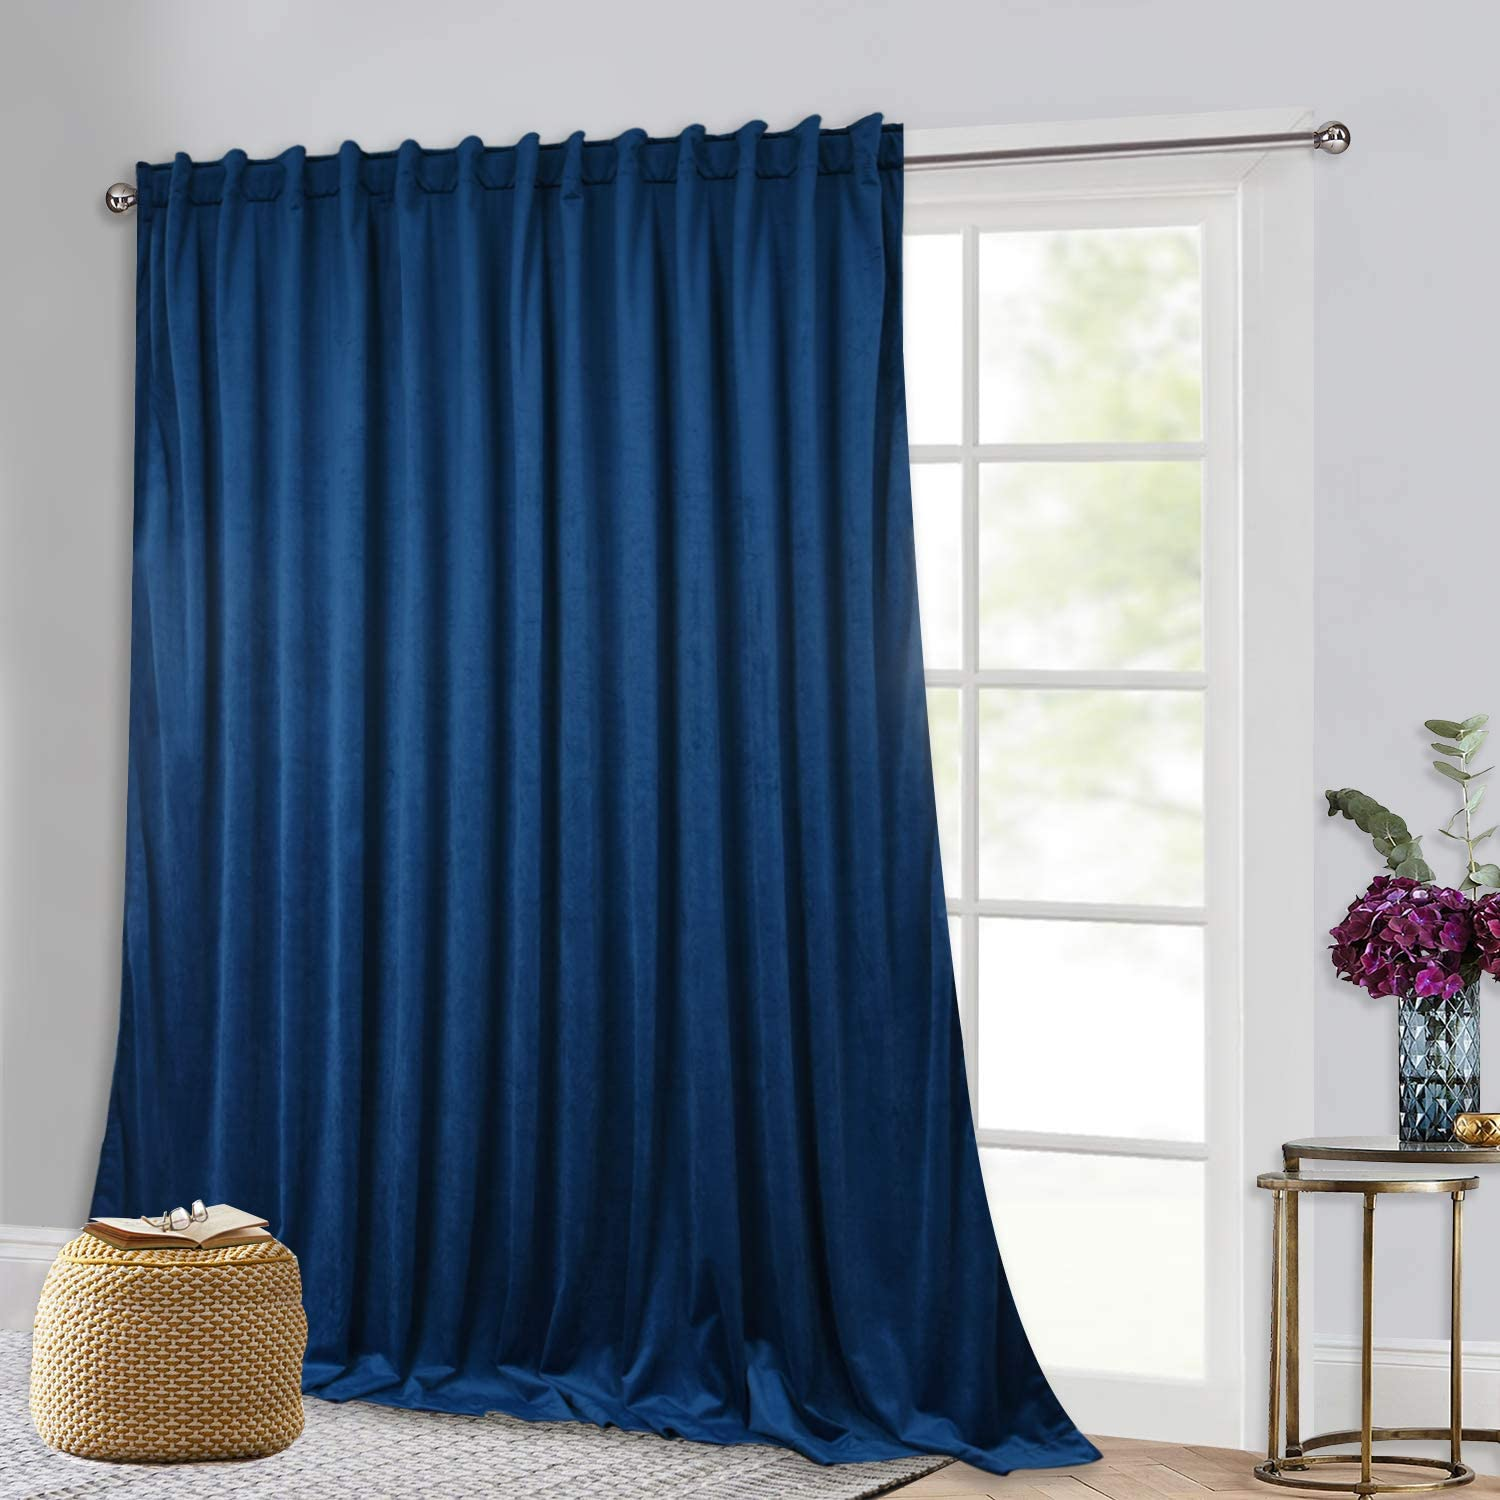 Double Wide Sliding Door Curtains - Thick Velvet Texture Country Curtains Blackout Insulated Panel Drapes for Son's Nursery/Office/Exhibition Center, Wide 100 x Long 108-inch, Blue, 1 Panel